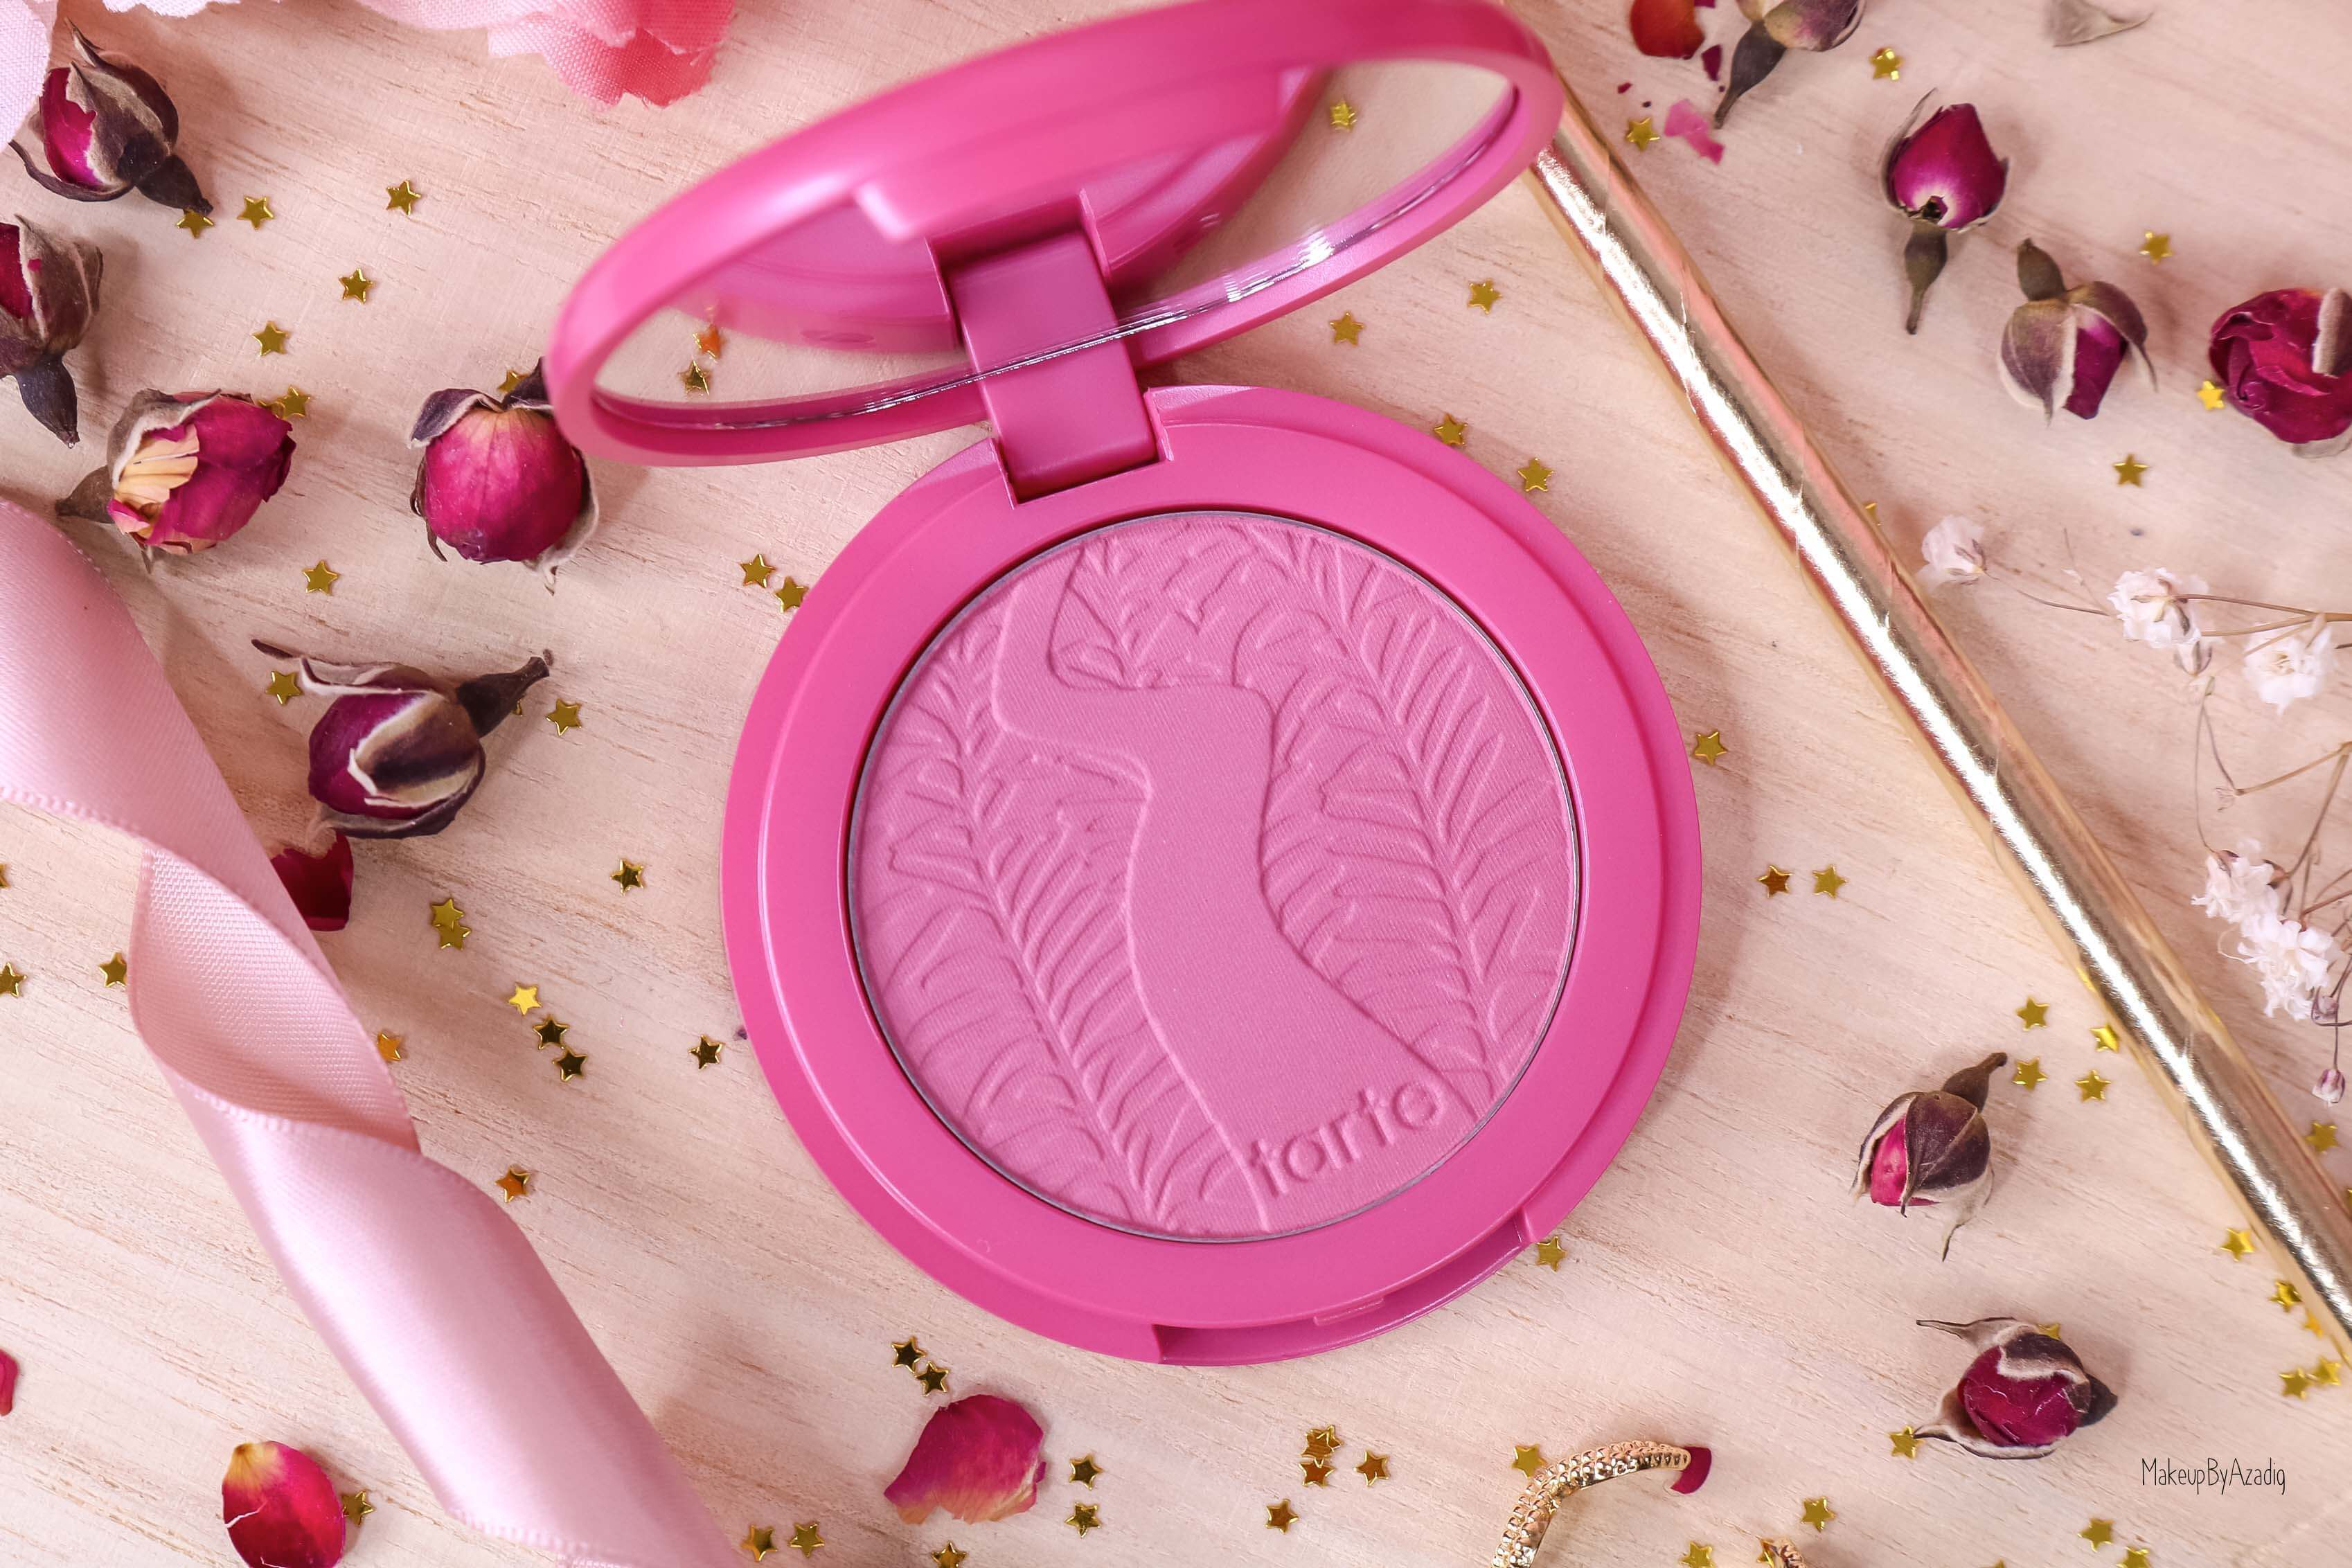 revue-blush-amazonian-clay-tarte-cosmetics-makeupbyazadig-sephora-france-blushing-bride-swatch-avis-prix-rose